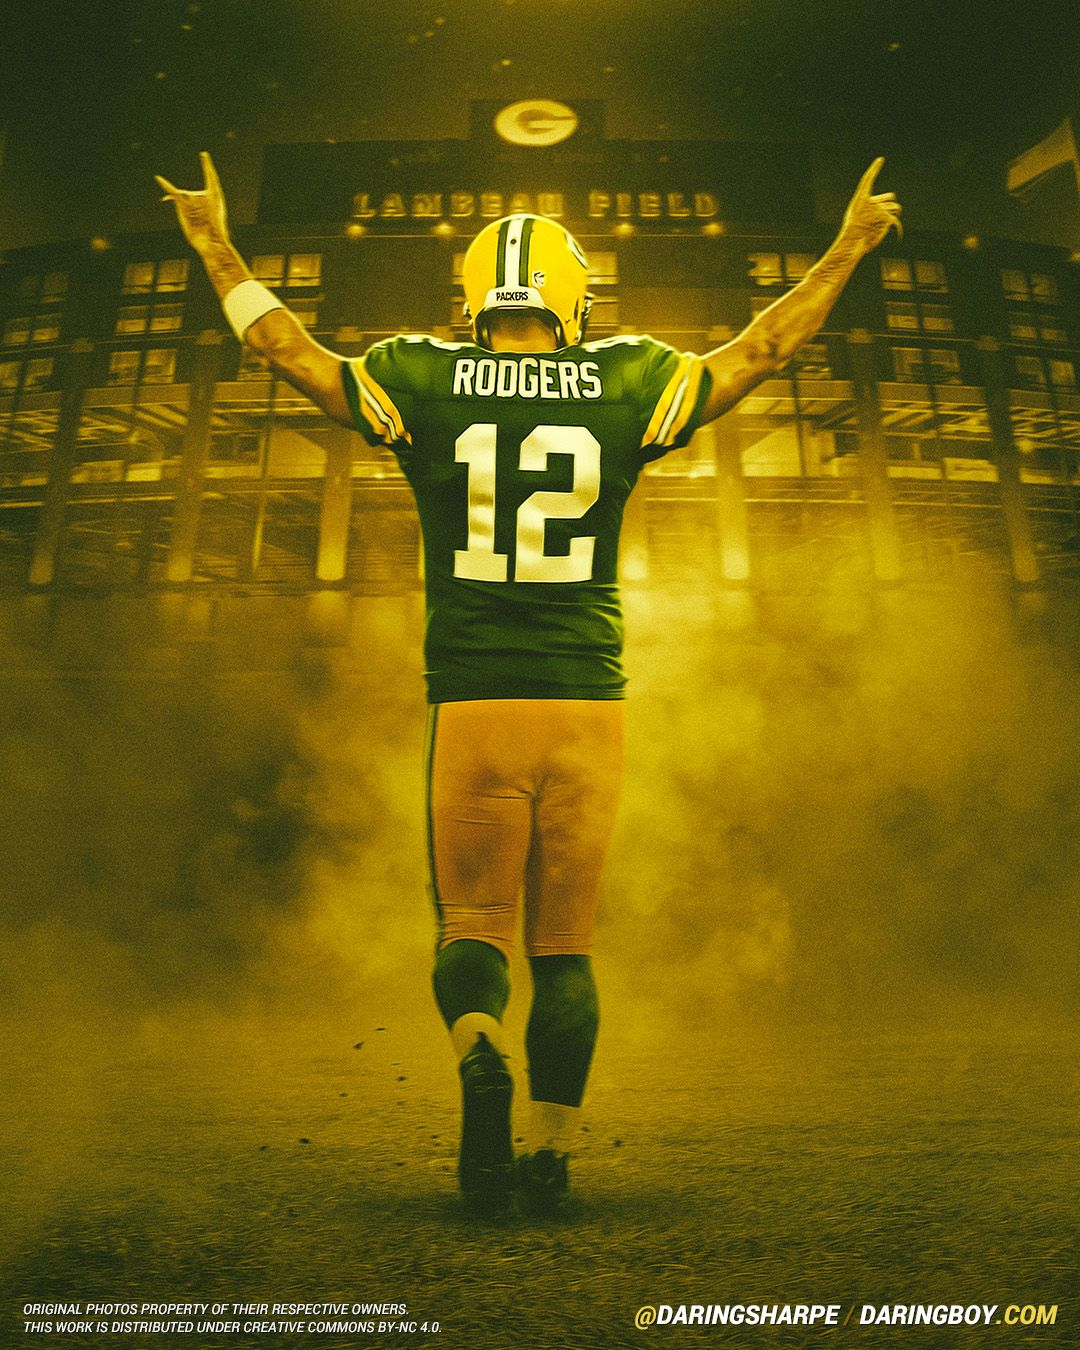 Pin By Steve Haldiman On Green Bay Packers In 2020 Green Bay Packers Wallpaper Green Bay Packers Rodgers Green Bay